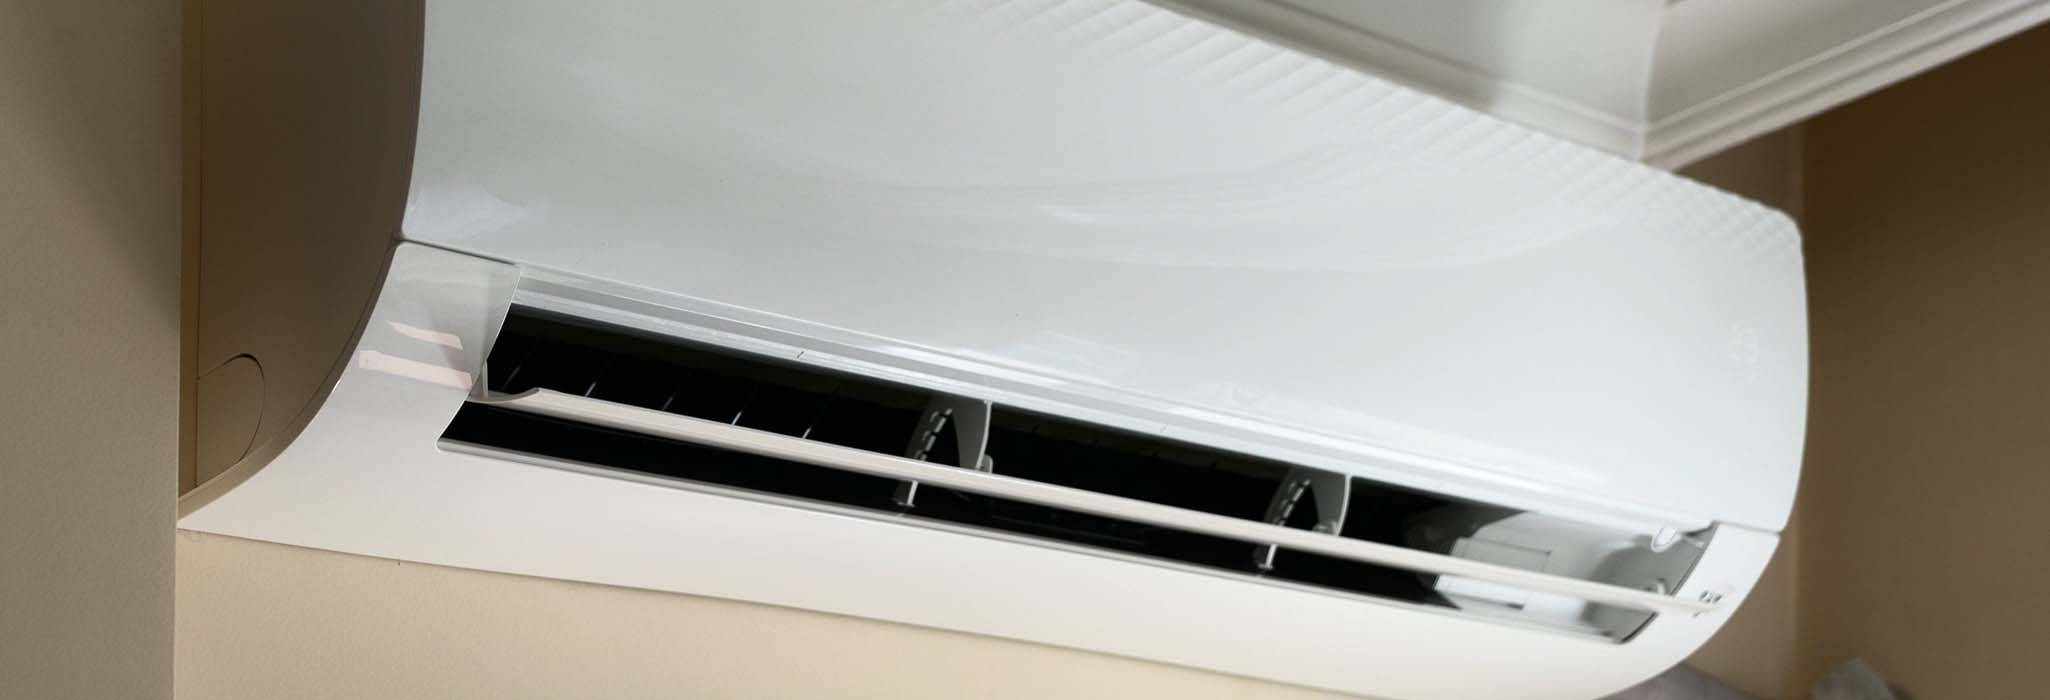 ductless vent